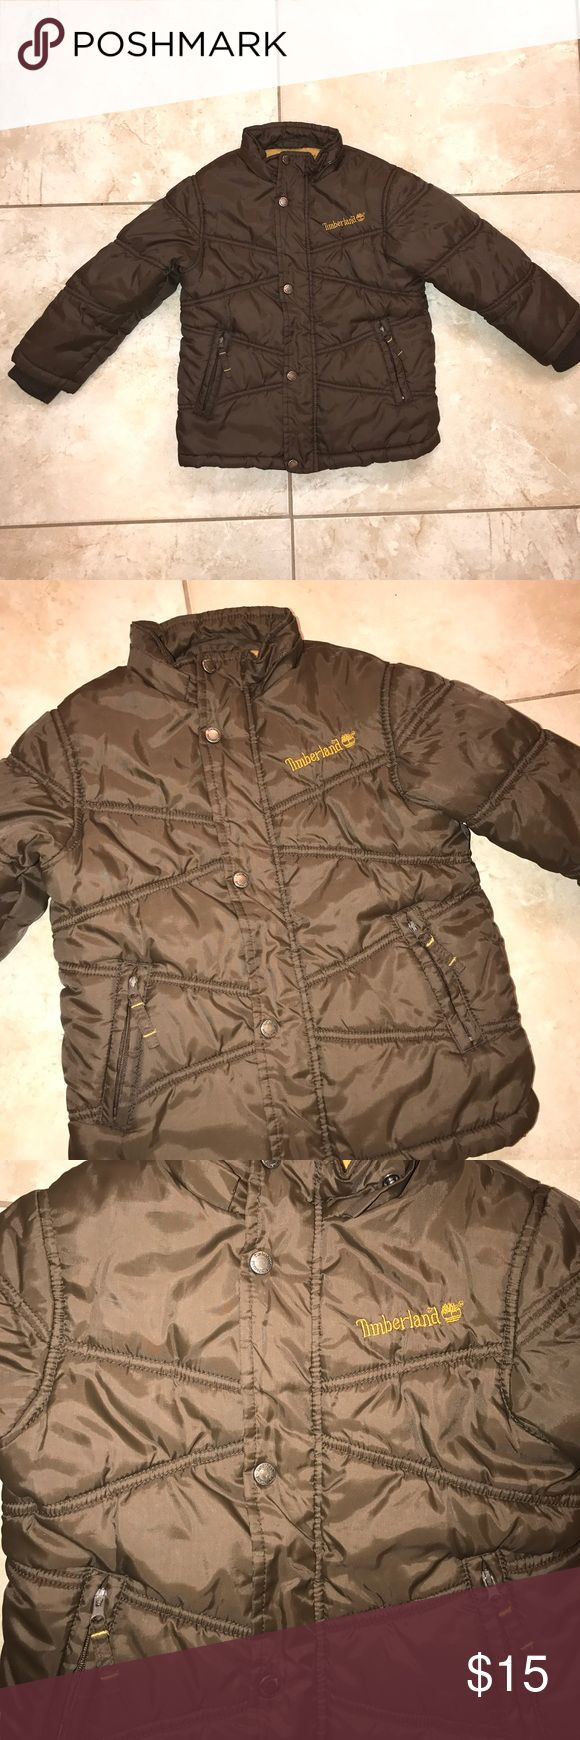 Boys Timberland Coat Good used condition. This coat doesn't have a hood but is very warm. Brown in color. All zippers work great. Size 3t. Timberland Jackets & Coats